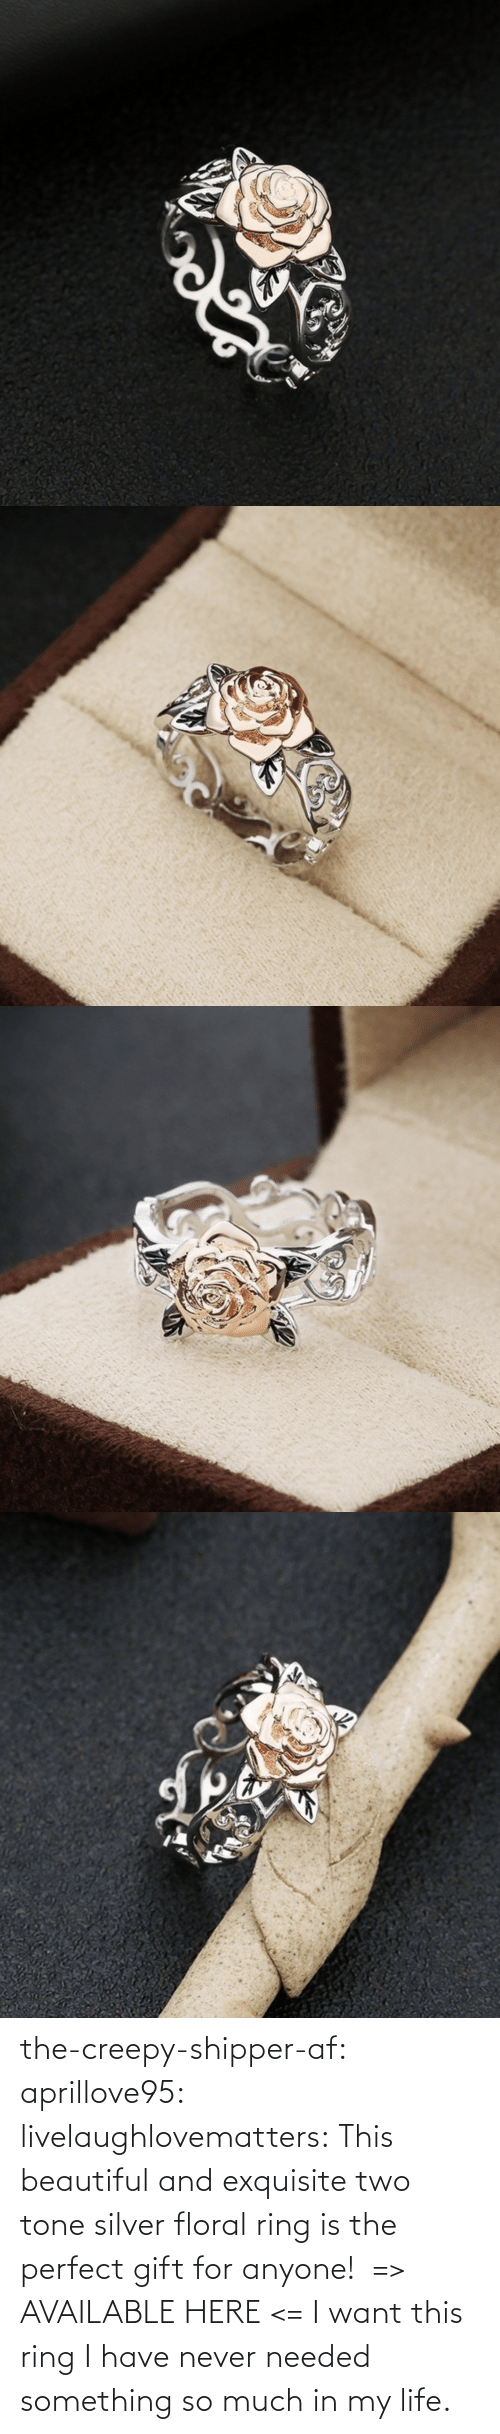 much: the-creepy-shipper-af: aprillove95:  livelaughlovematters:  This beautiful and exquisite two tone silver floral ring is the perfect gift for anyone!  => AVAILABLE HERE <=    I want this ring   I have never needed something so much in my life.